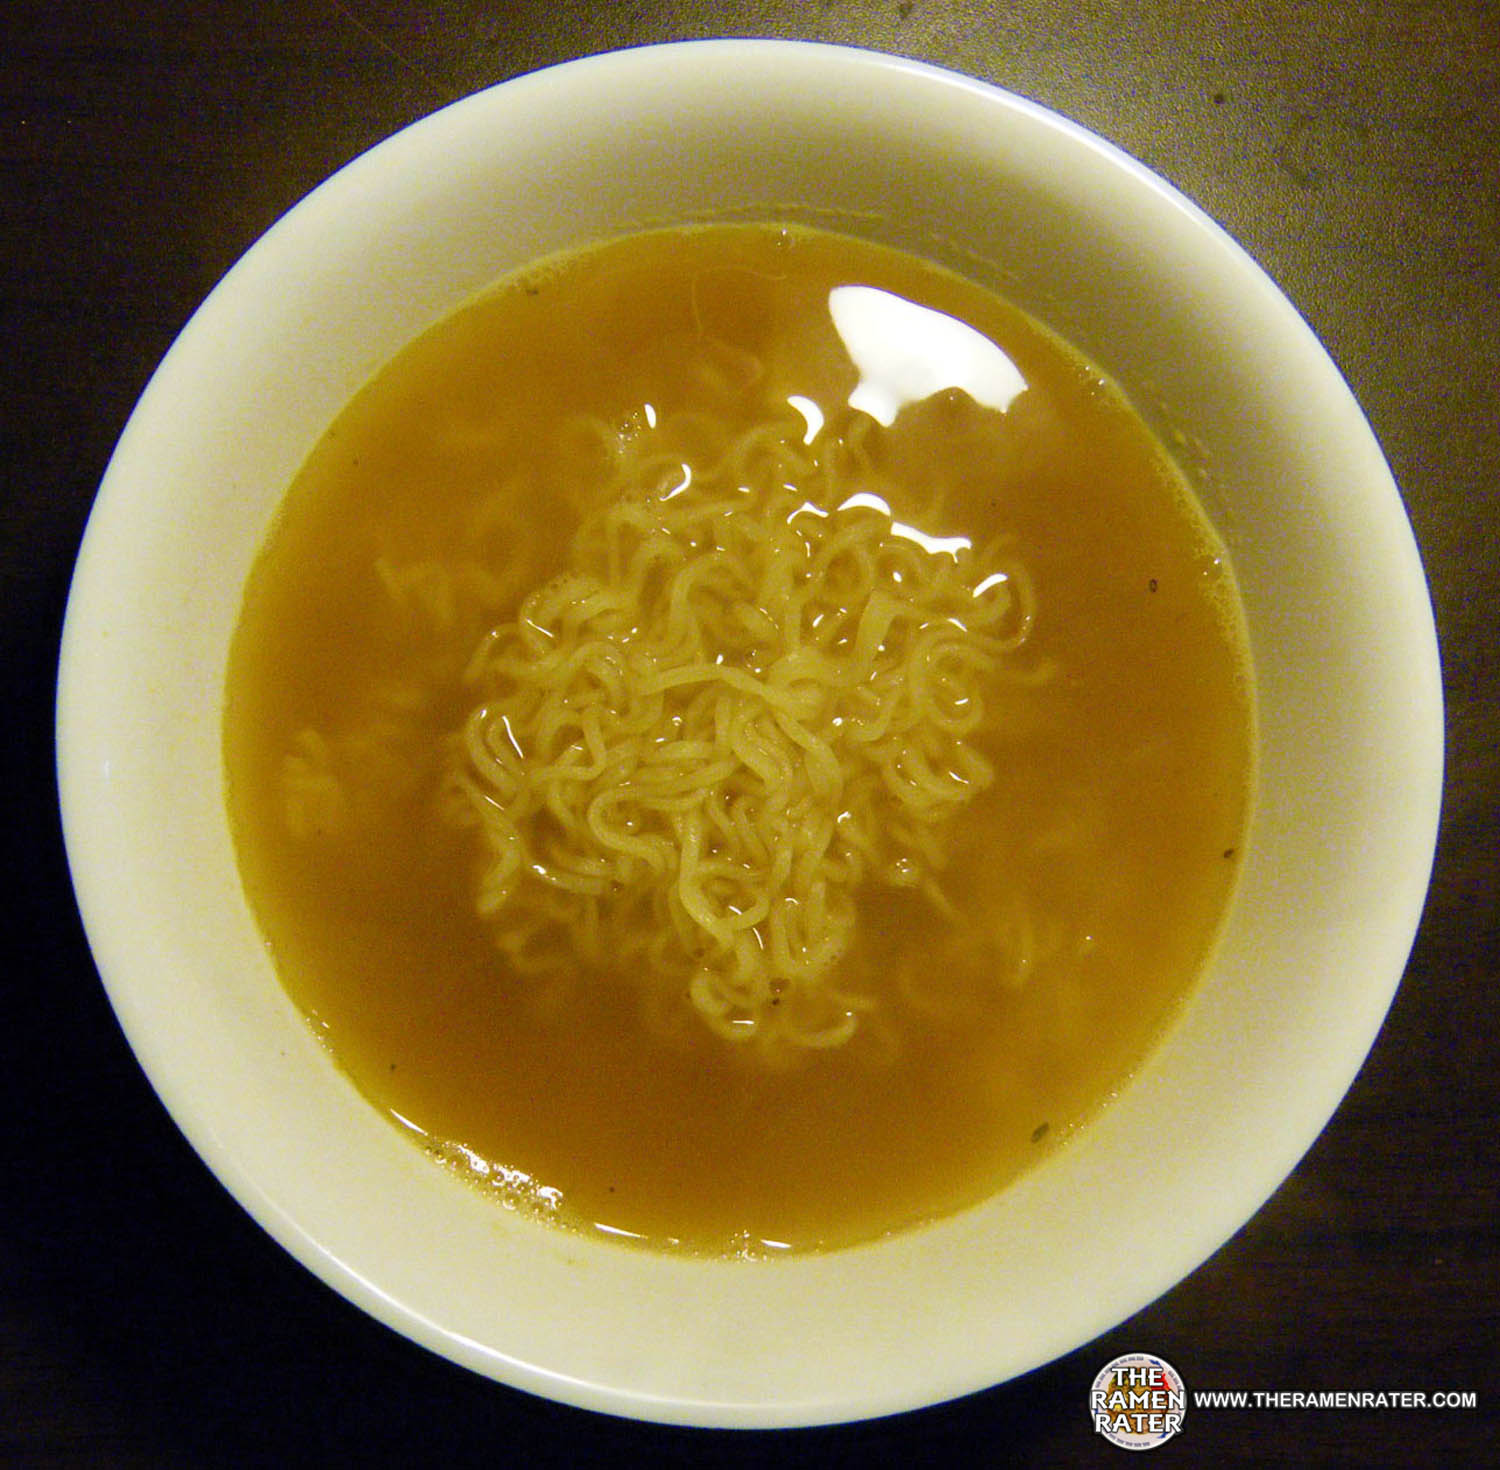 instant noodle porter five forces Maggi makes instant soups, seasonings, noodles, and bouillon cubes   following is a detailed porter five forces model analysis of maggi:.